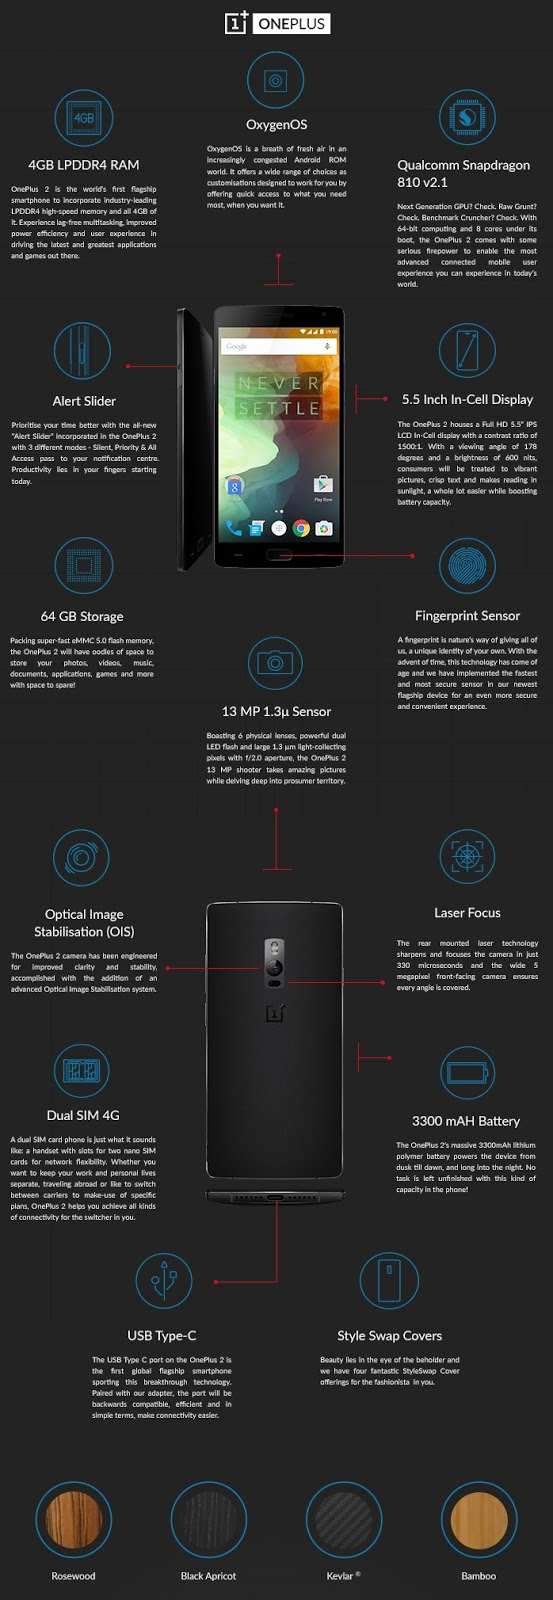 OnePlus-2-full-Specifications-list